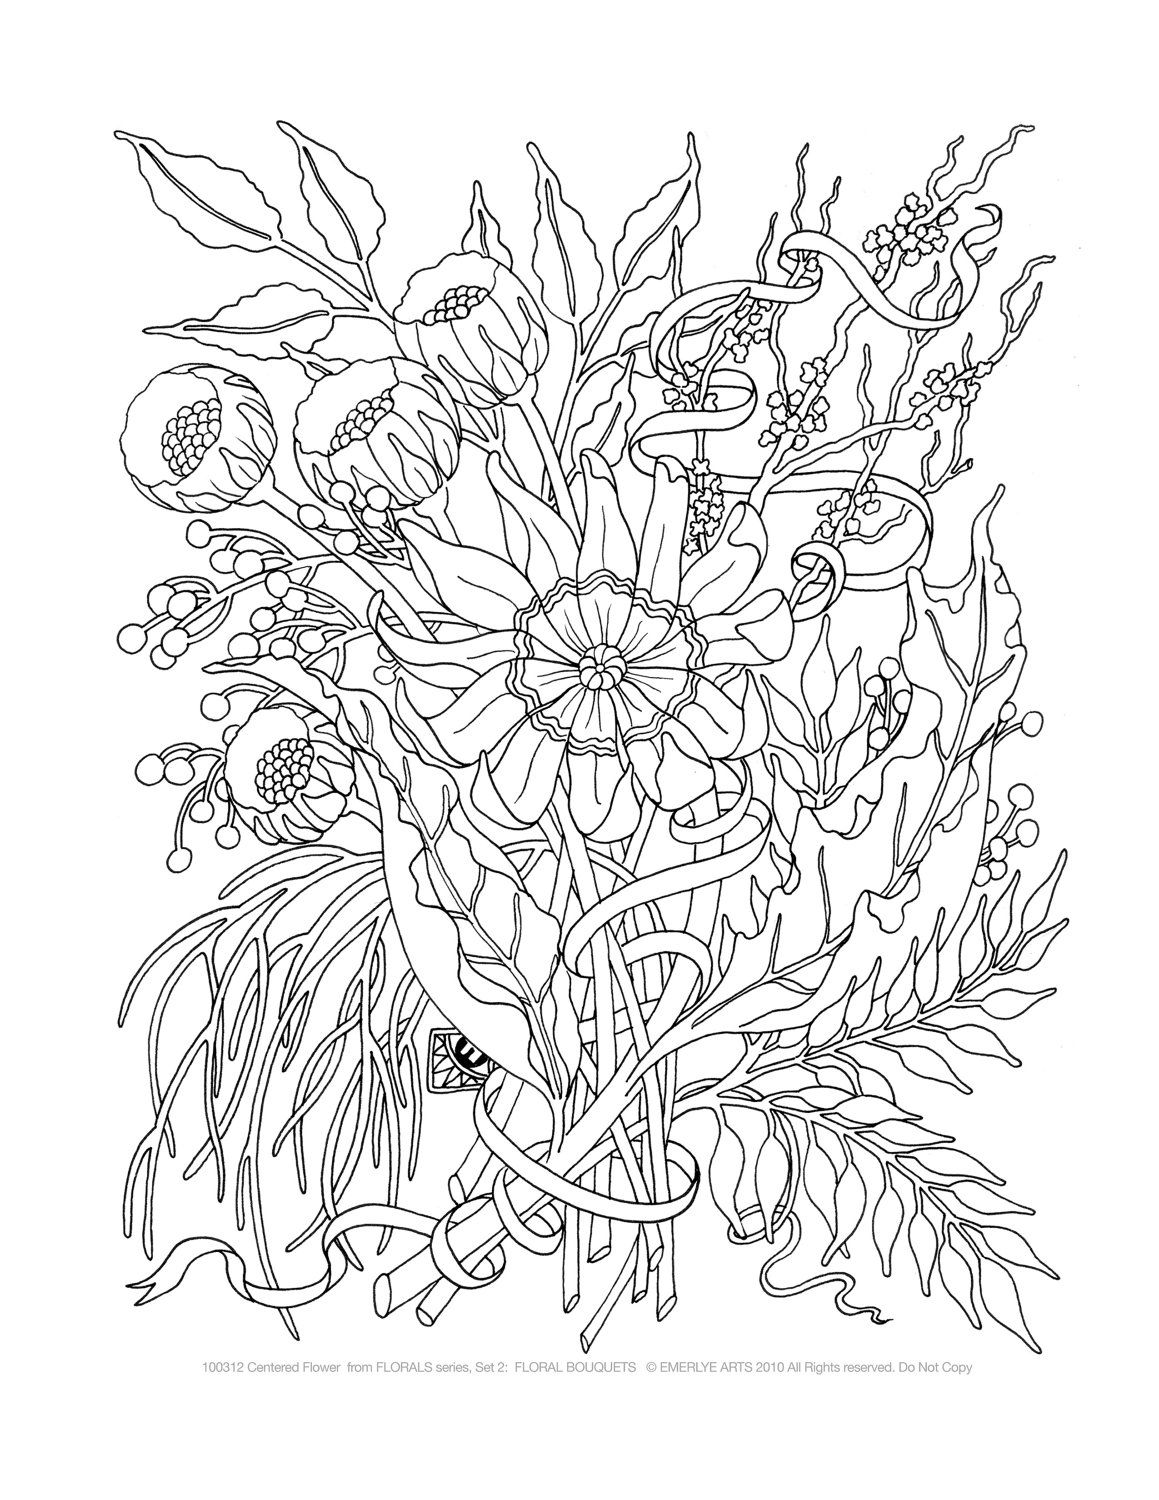 advanced nature coloring pages - photo#22